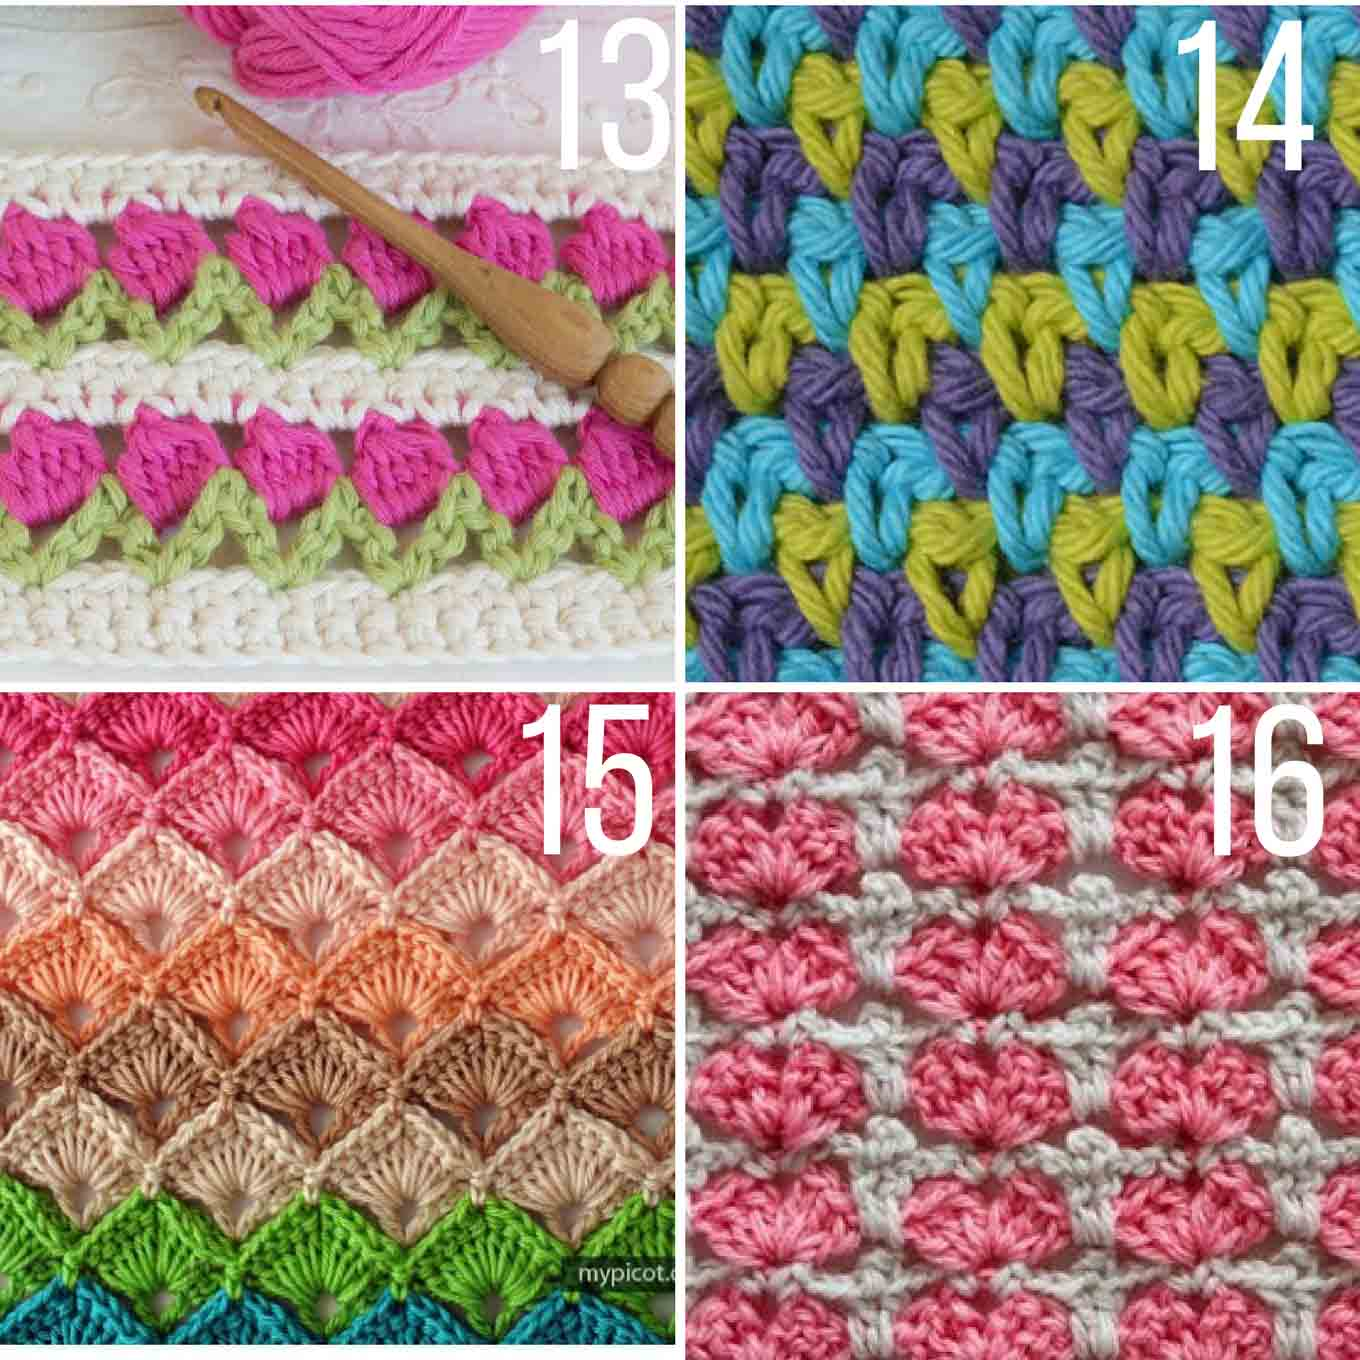 Crochet Multiple Colors : Gorgeous crochet stitch tutorials using many colors of yarn in one ...